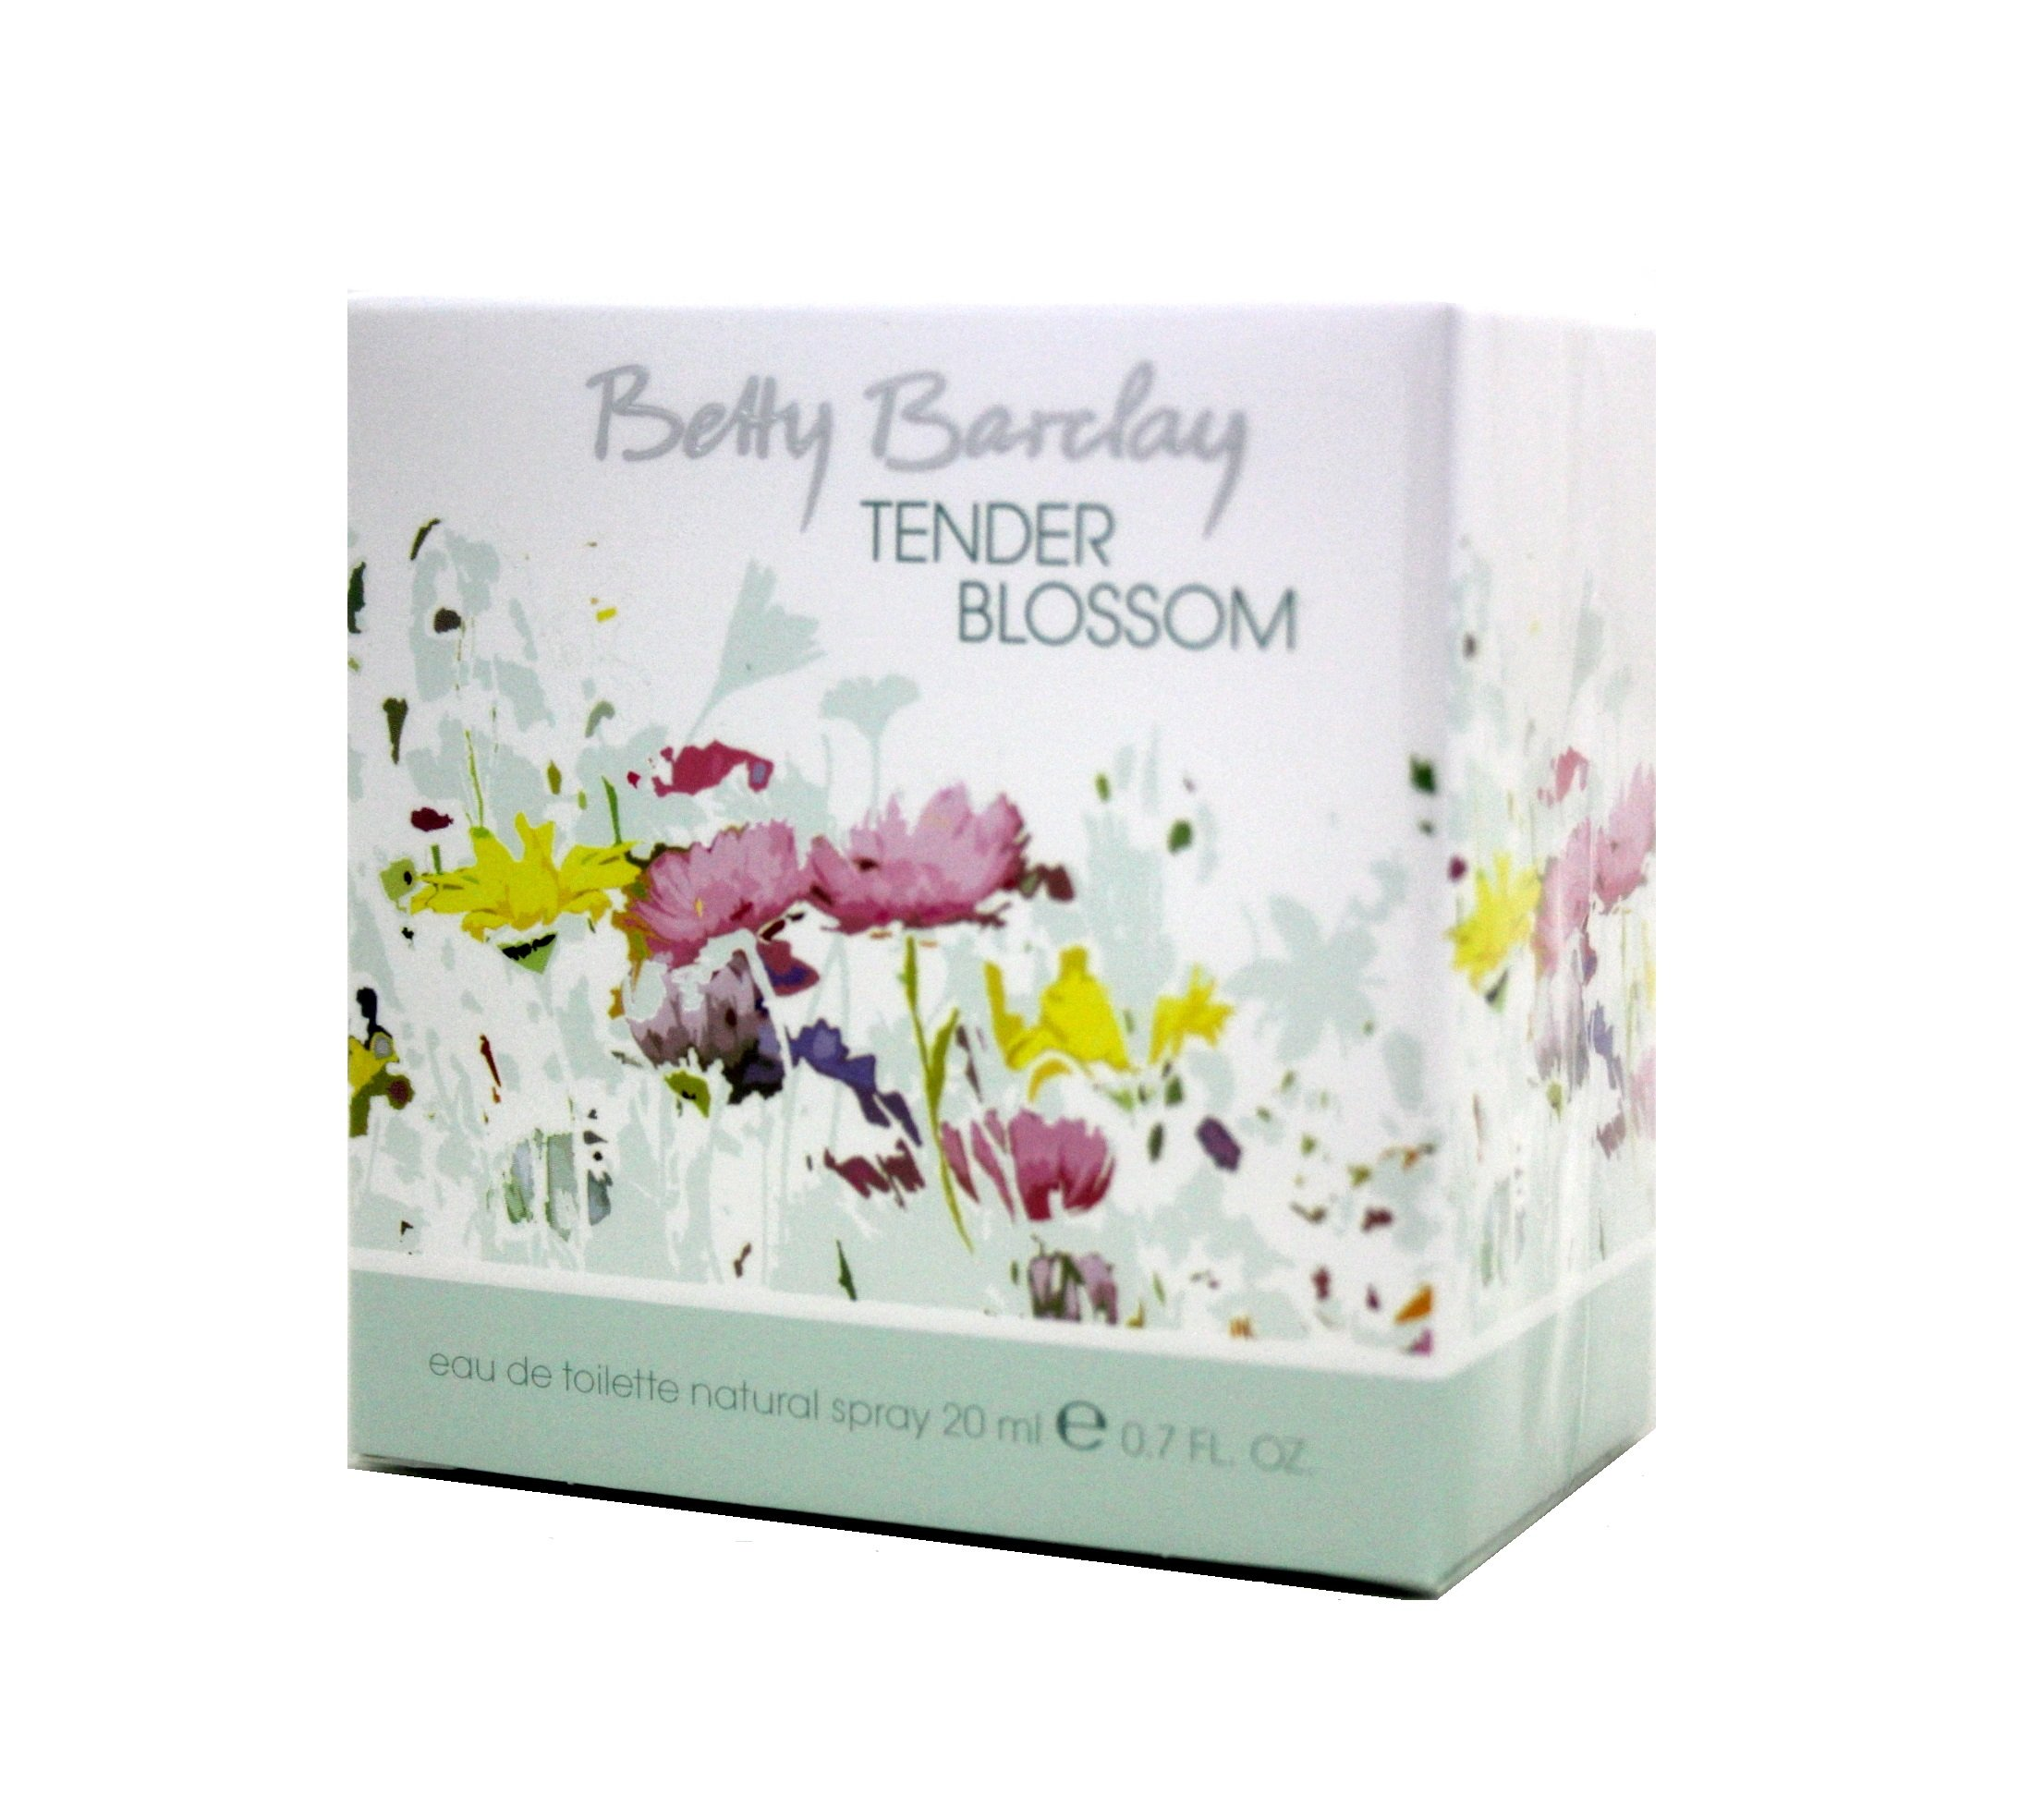 Betty Barclay Tender Blossom Eau de Toilette